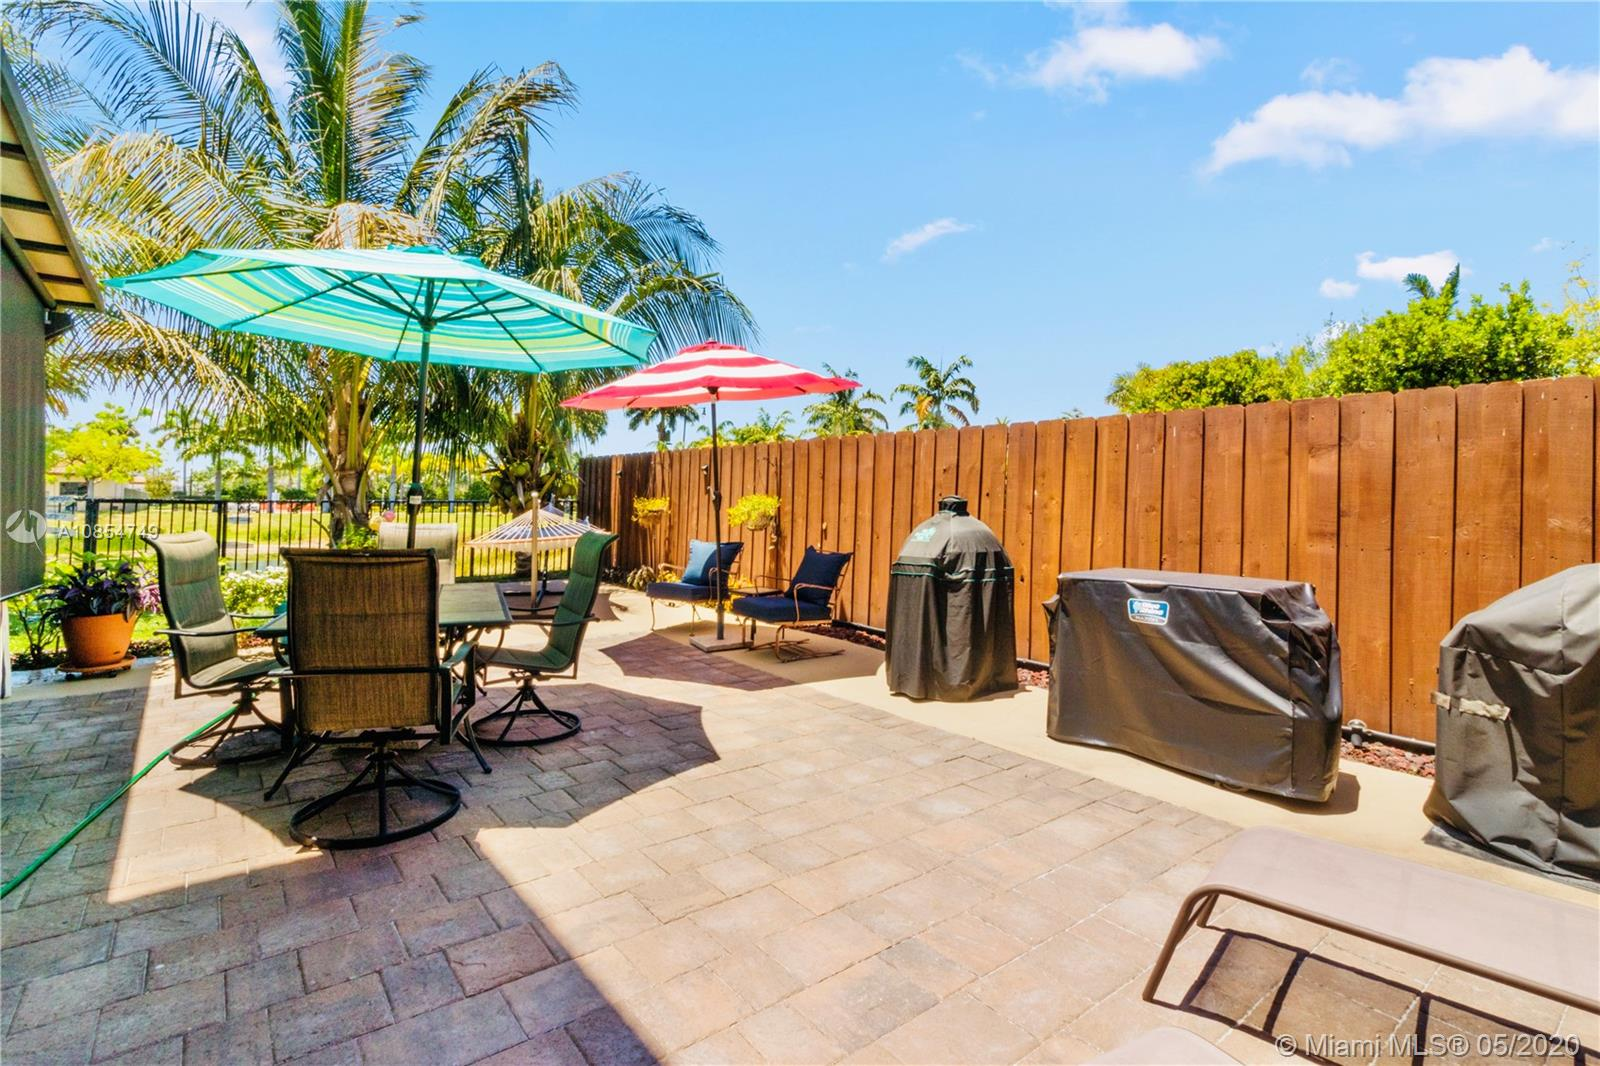 414 SE 34th Ter, Homestead, Florida 33033, 5 Bedrooms Bedrooms, ,3 BathroomsBathrooms,Residential,For Sale,414 SE 34th Ter,A10854749